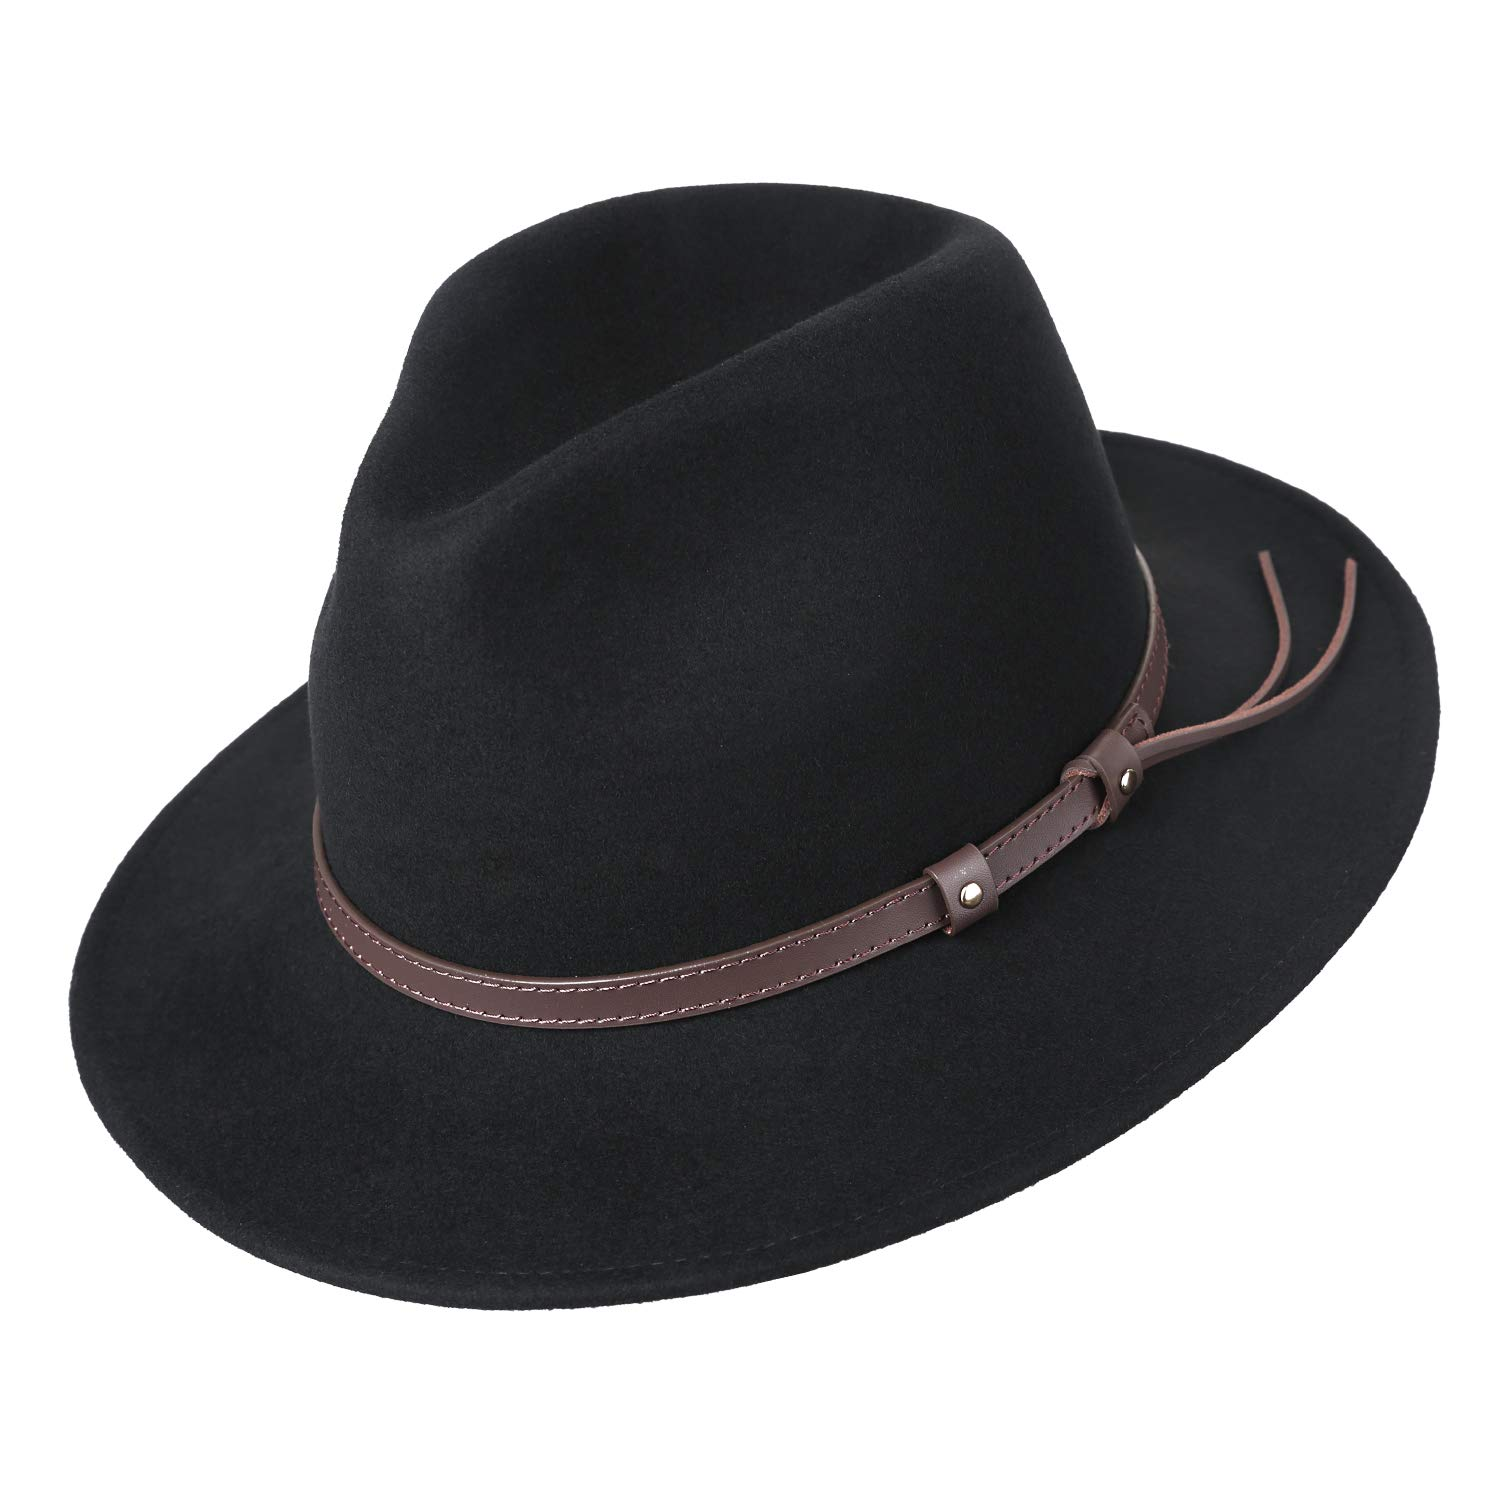 d2dfc1f00c Deevoov Men s Wool Felt Fedora Outback Short Brim Trilby Hat Derby Hats  with Leather Belt at Amazon Men s Clothing store